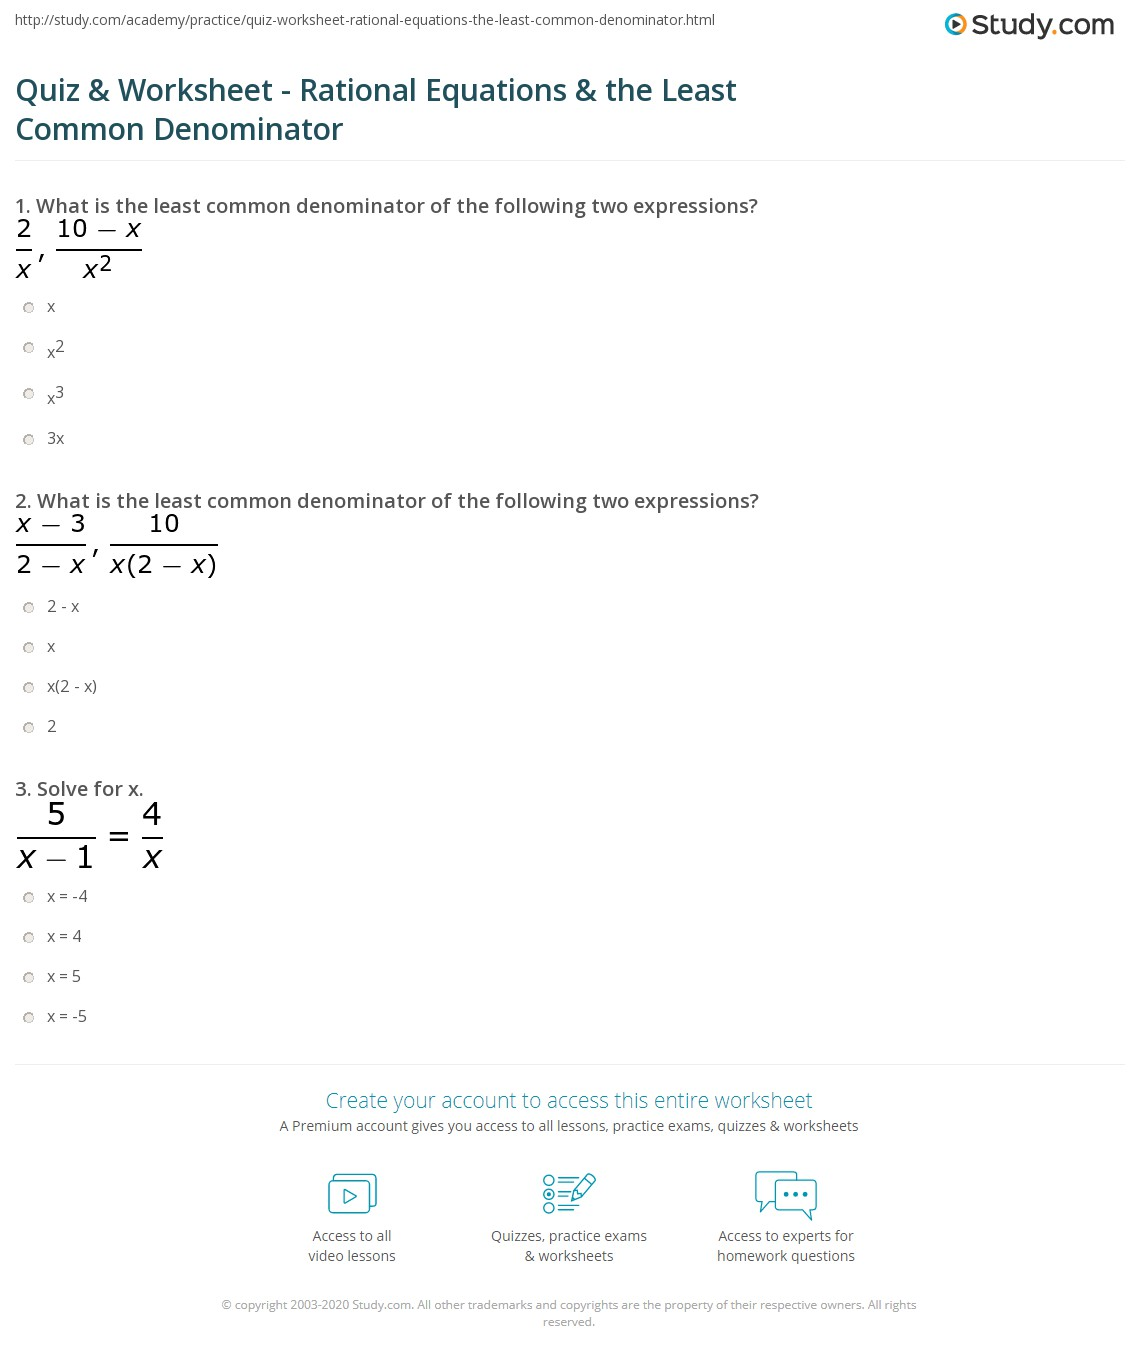 Worksheets Solving Rational Equations Worksheet quiz worksheet rational equations the least common print solving and finding denominator worksheet